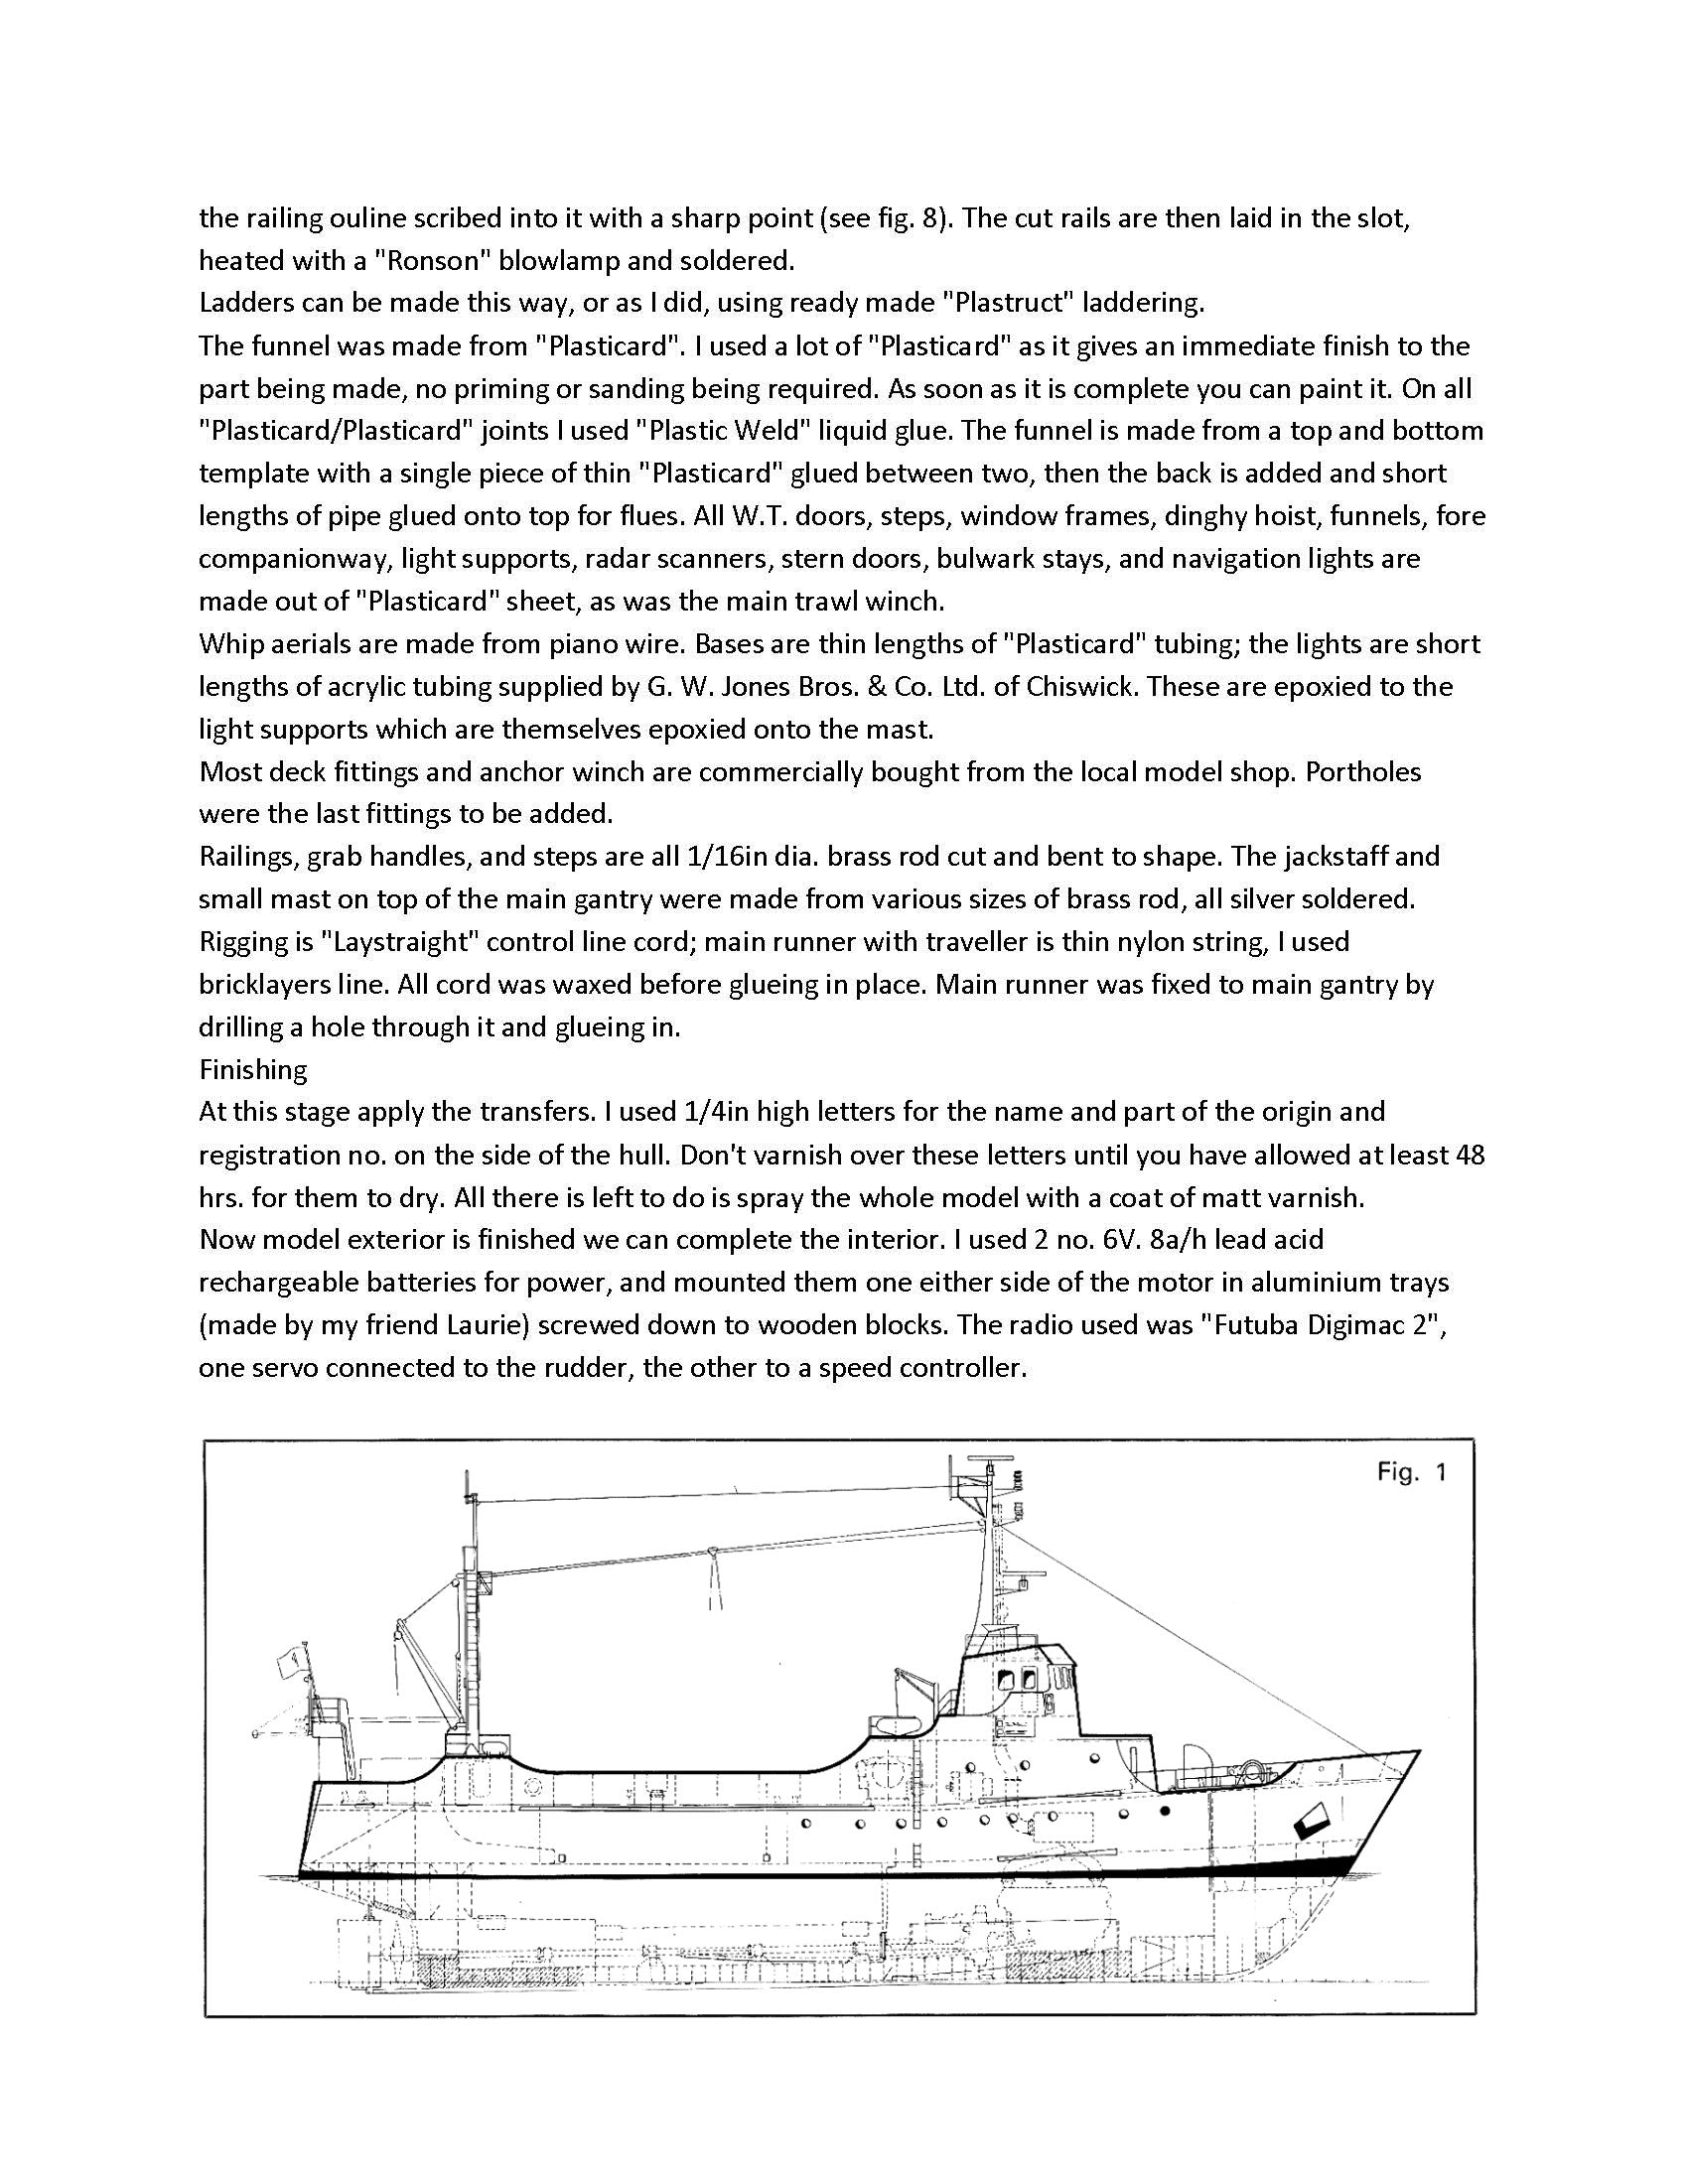 Digital full size plans on Cd Scale 1:48 trawler,BOSTON BLENHEIM Suitable for radio control